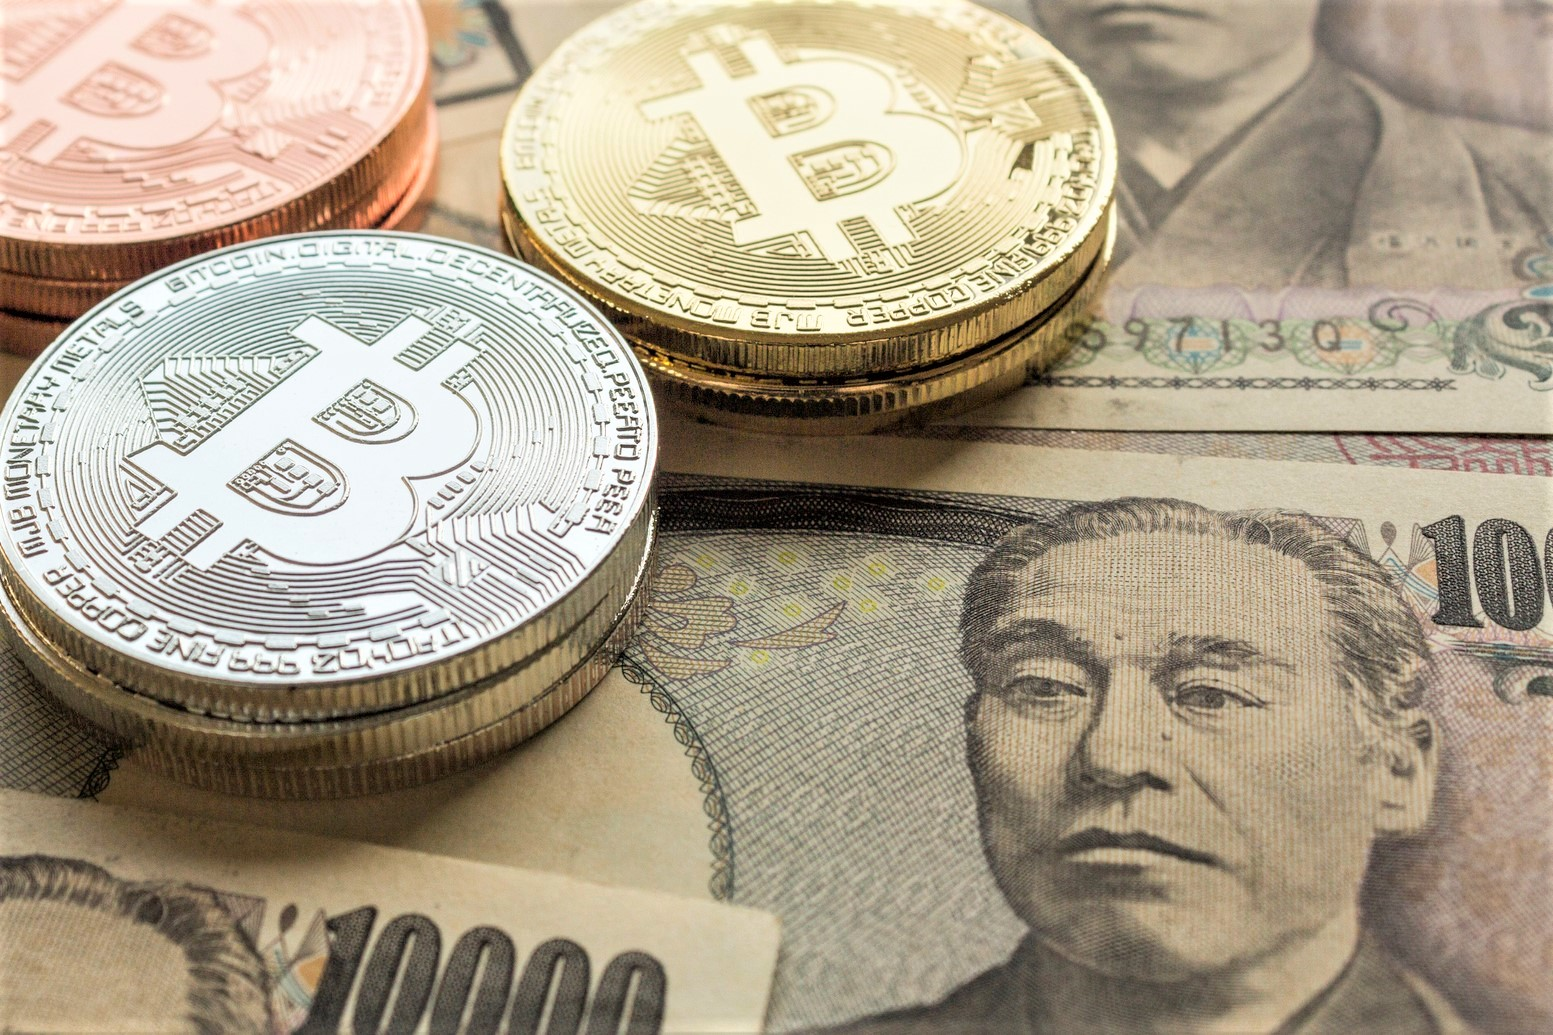 More Crypto Regulations for Japan as Bank Reveals Wallet Plans